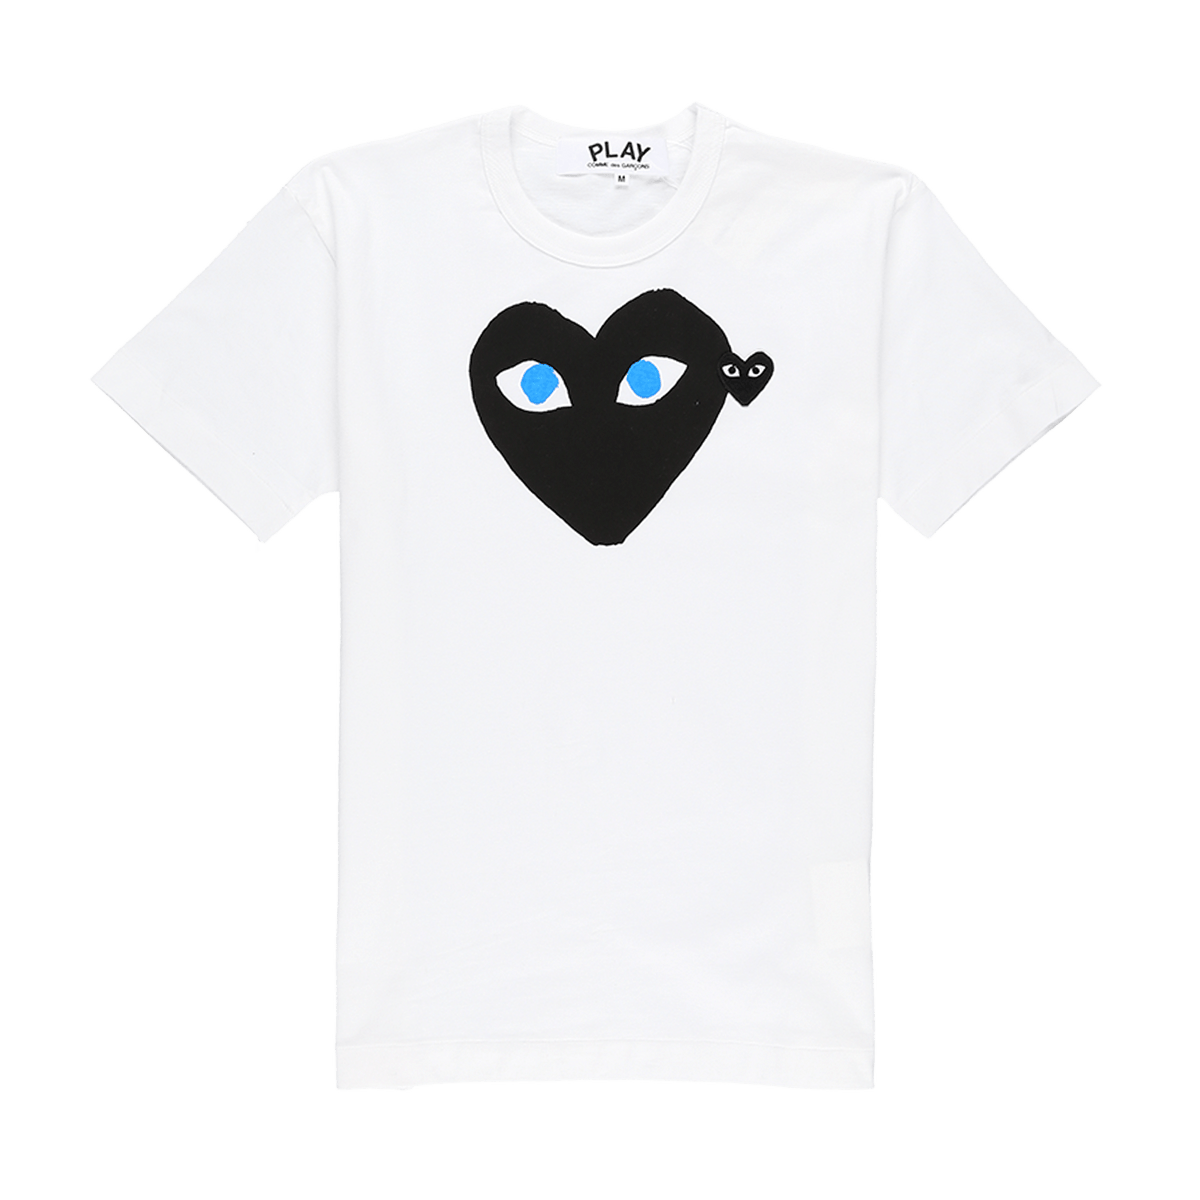 Comme des Garcons PLAY Black Heart T-Shirt  - XHIBITION